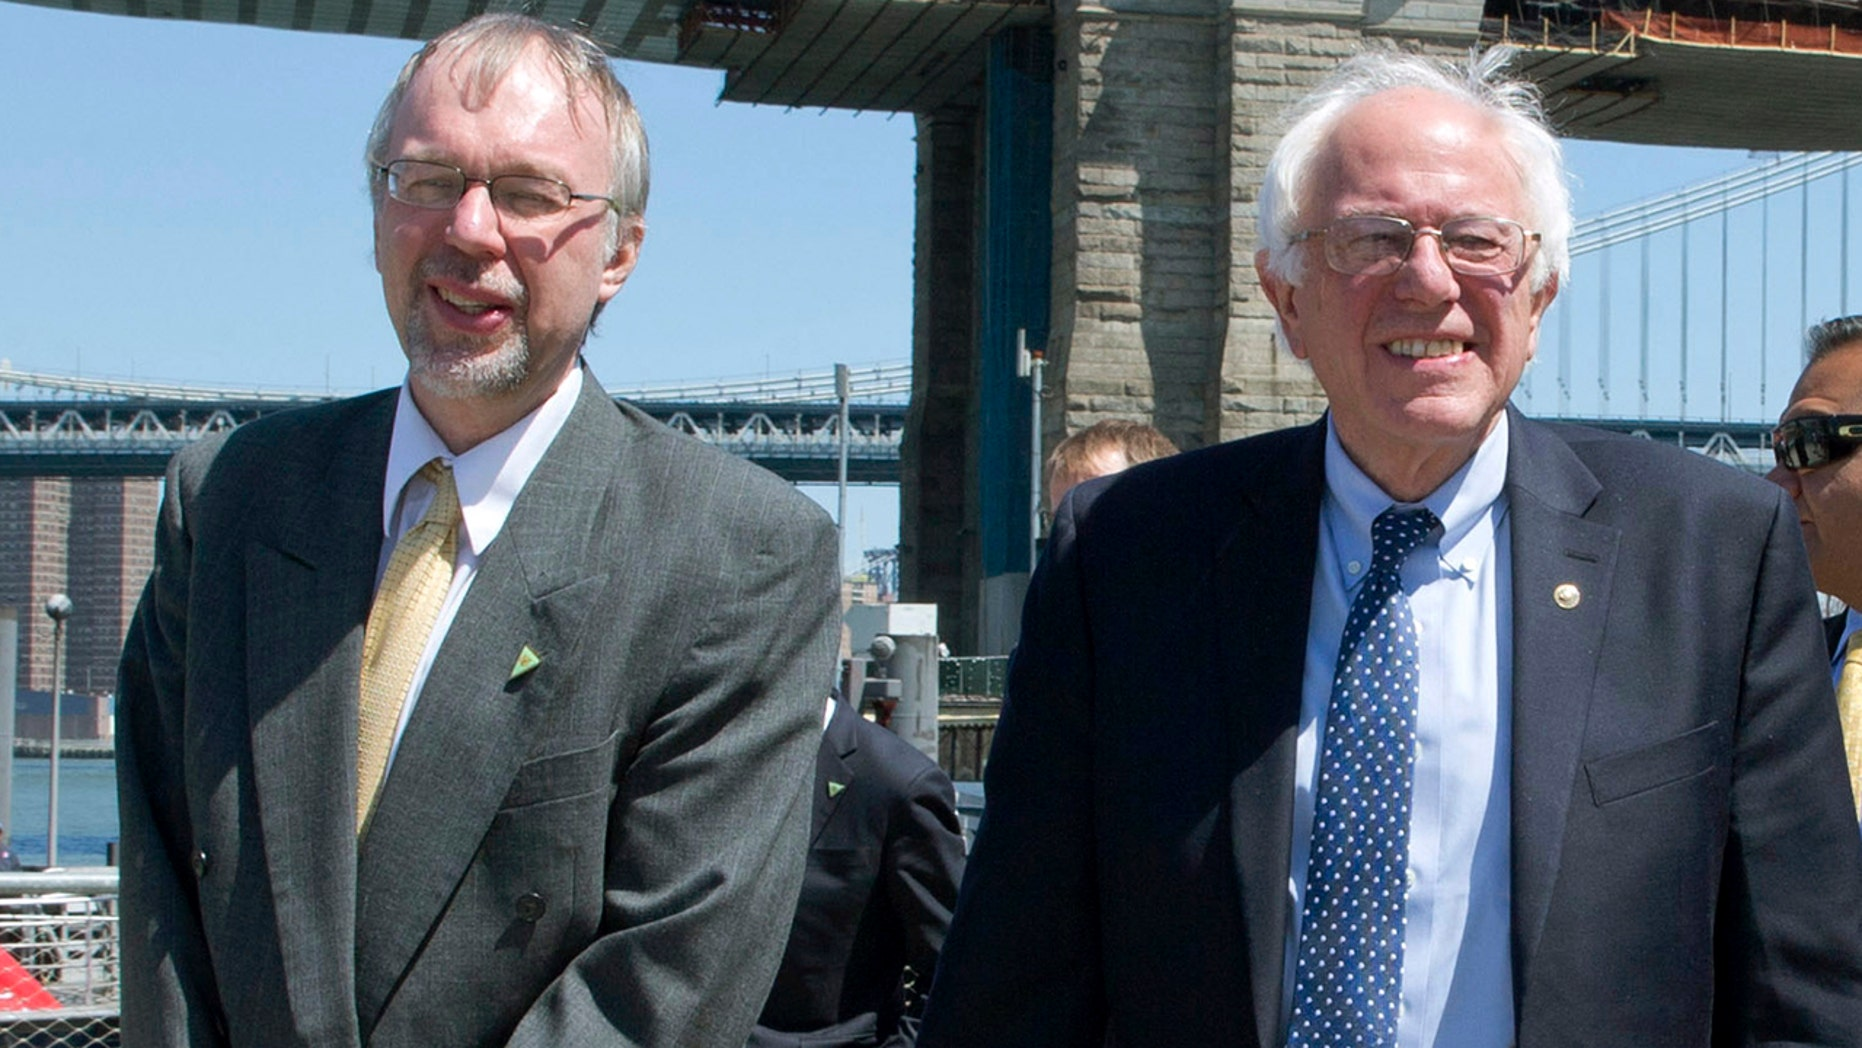 U.S. House candidate Levi Sanders, left, and U.S. Sen. Bernie Sanders, I-Vt., take a walk in Brooklyn Bridge Park in Brooklyn, N.Y., April 7, 2016.